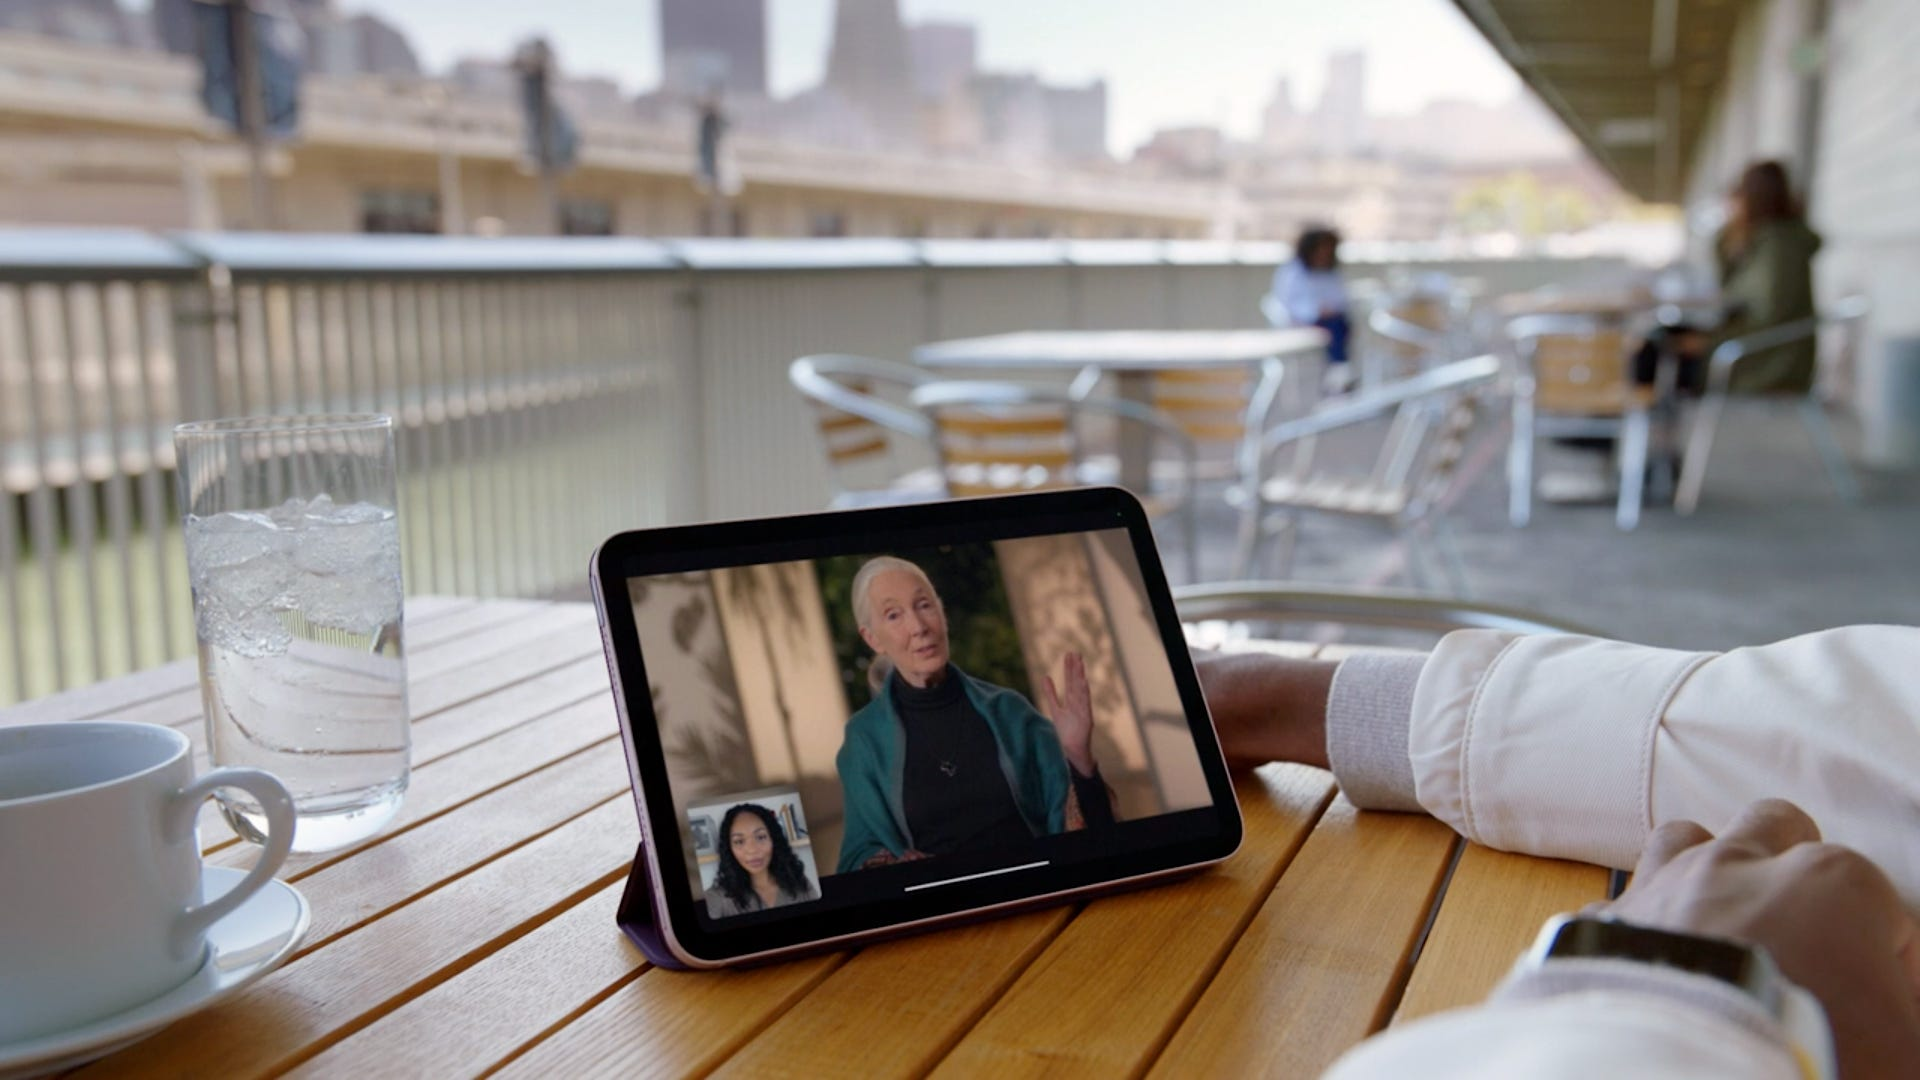 Here's how to pre-order the new iPad and iPad Mini